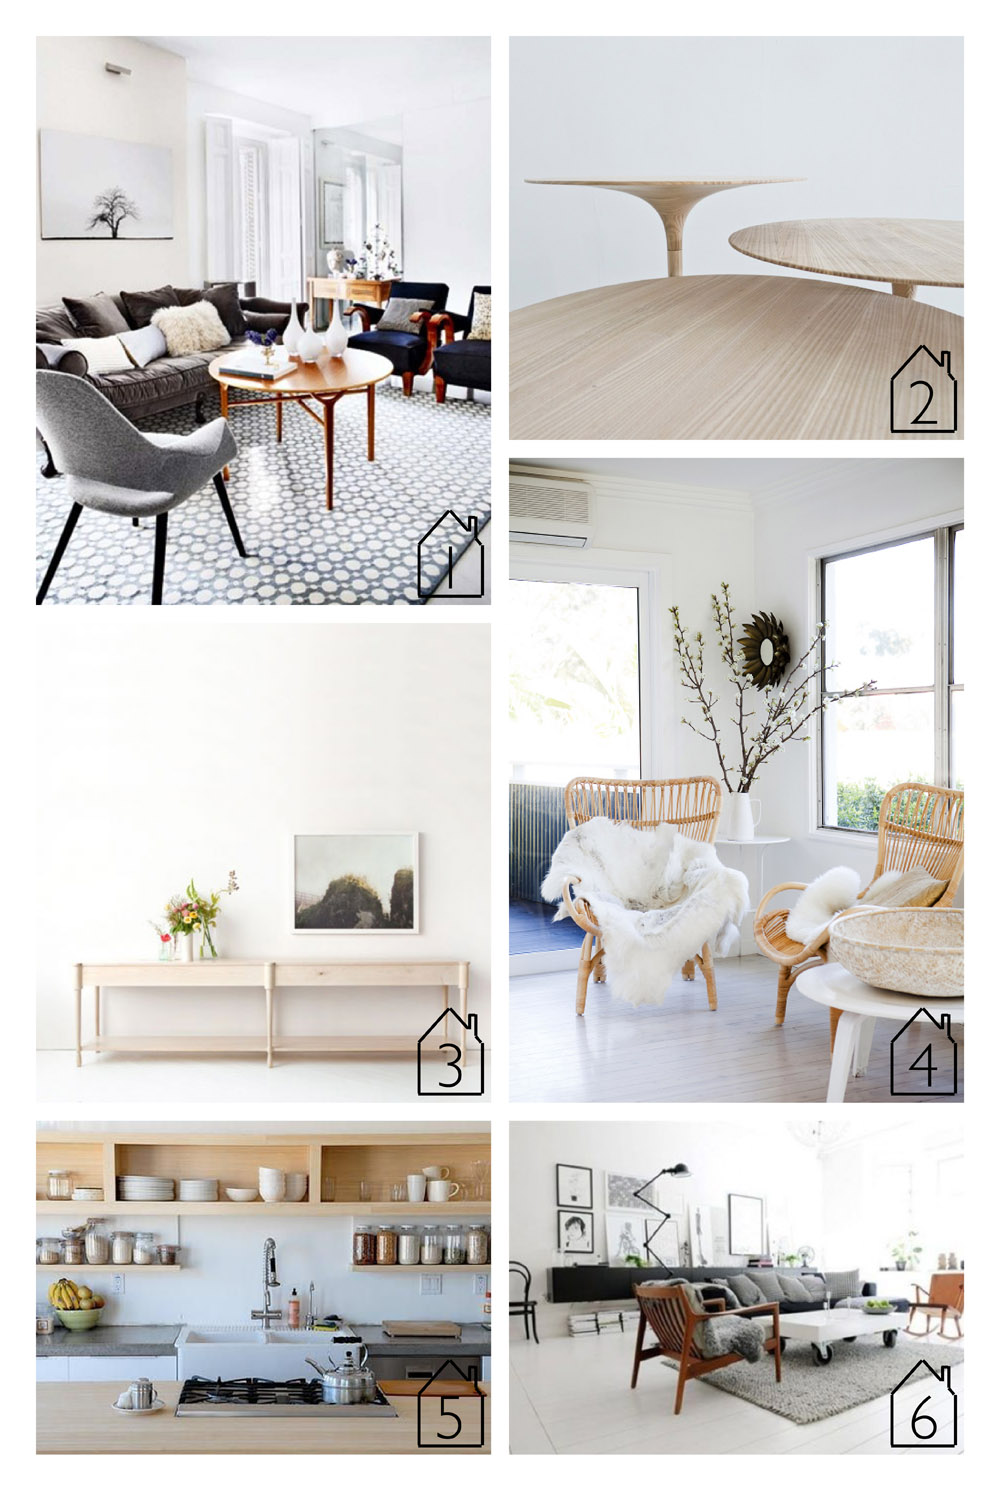 1. source unknown  2. design by   Maria Bjørlykke   3. piece by  egg collective   4. source unknown  5. source unknown  6. swedish apartment via piccsy